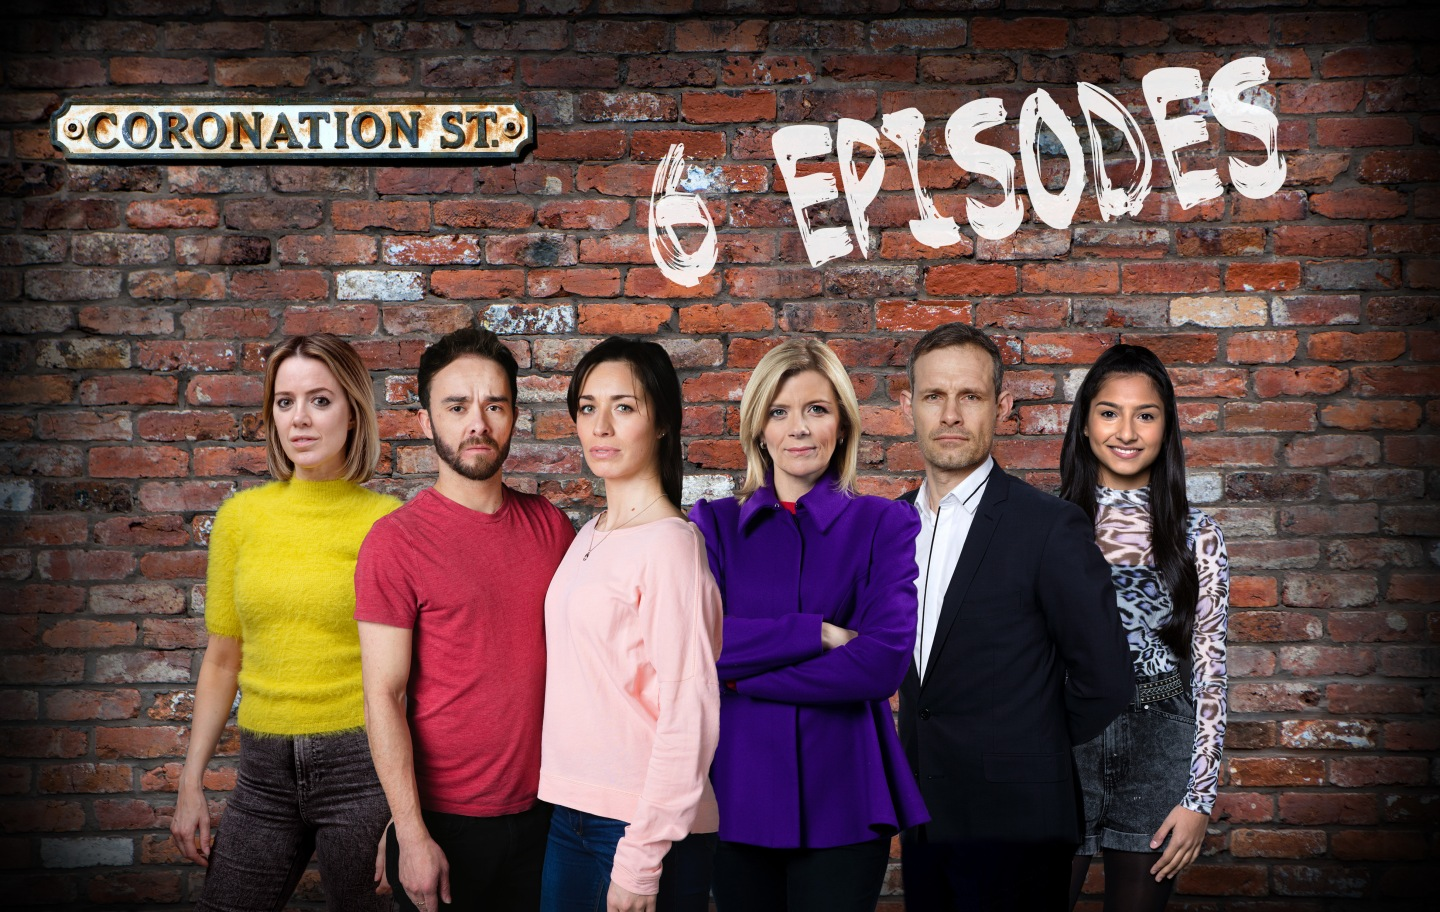 Abi, David, Shona, Leanne, Nick and Asha in Corrie